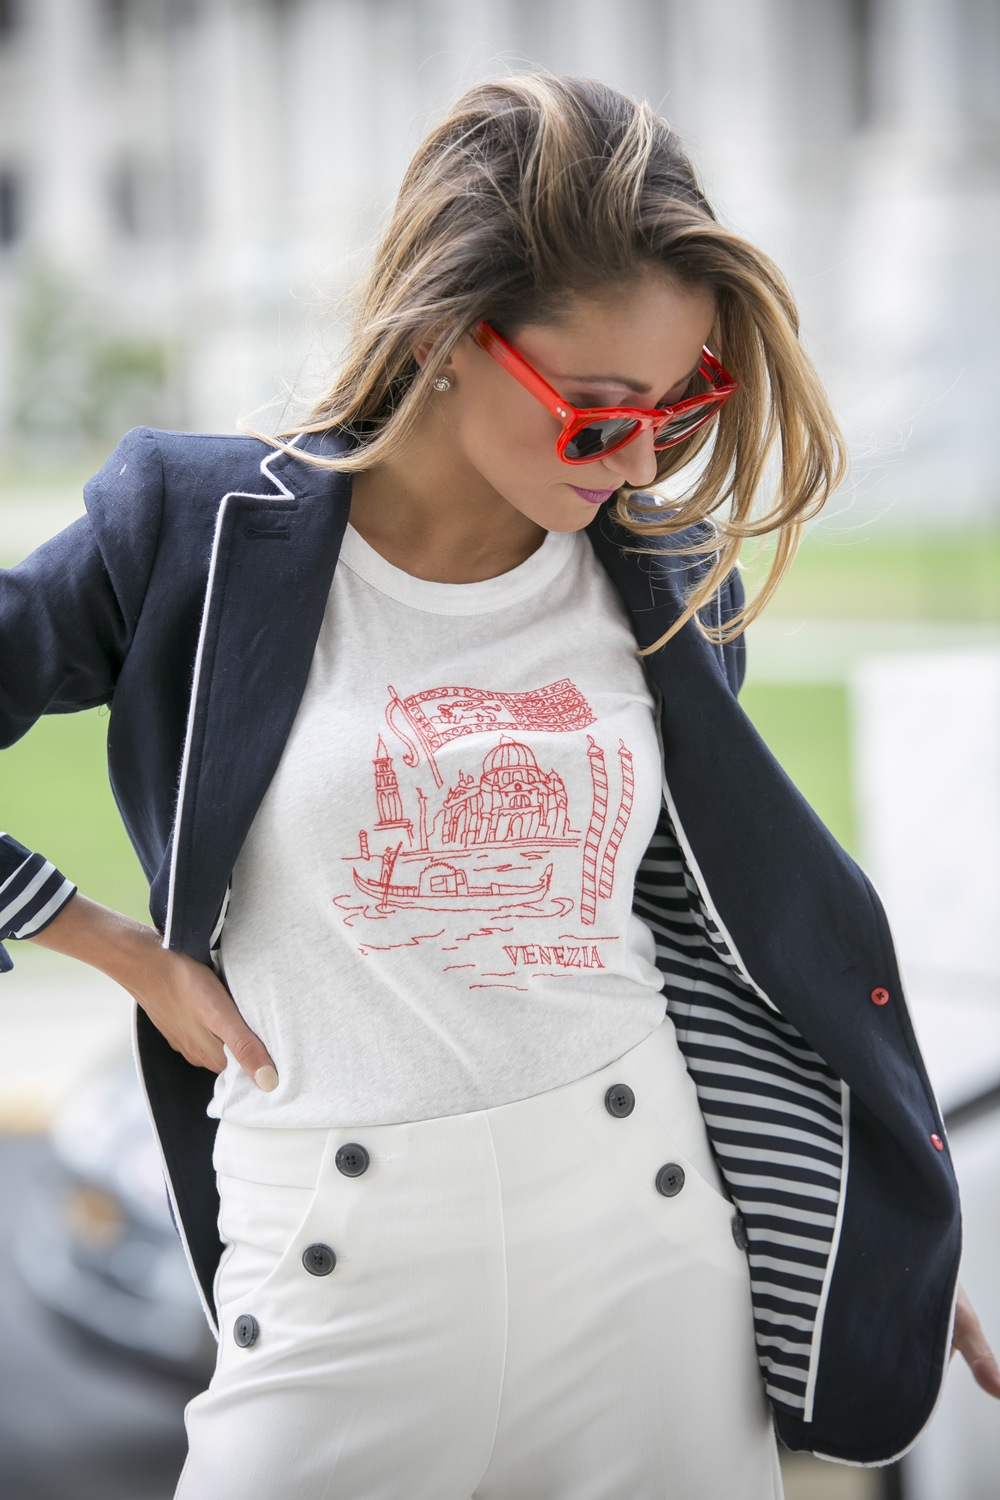 Venezia tee from J.Crew paired with a linen blazer and red sunglasses